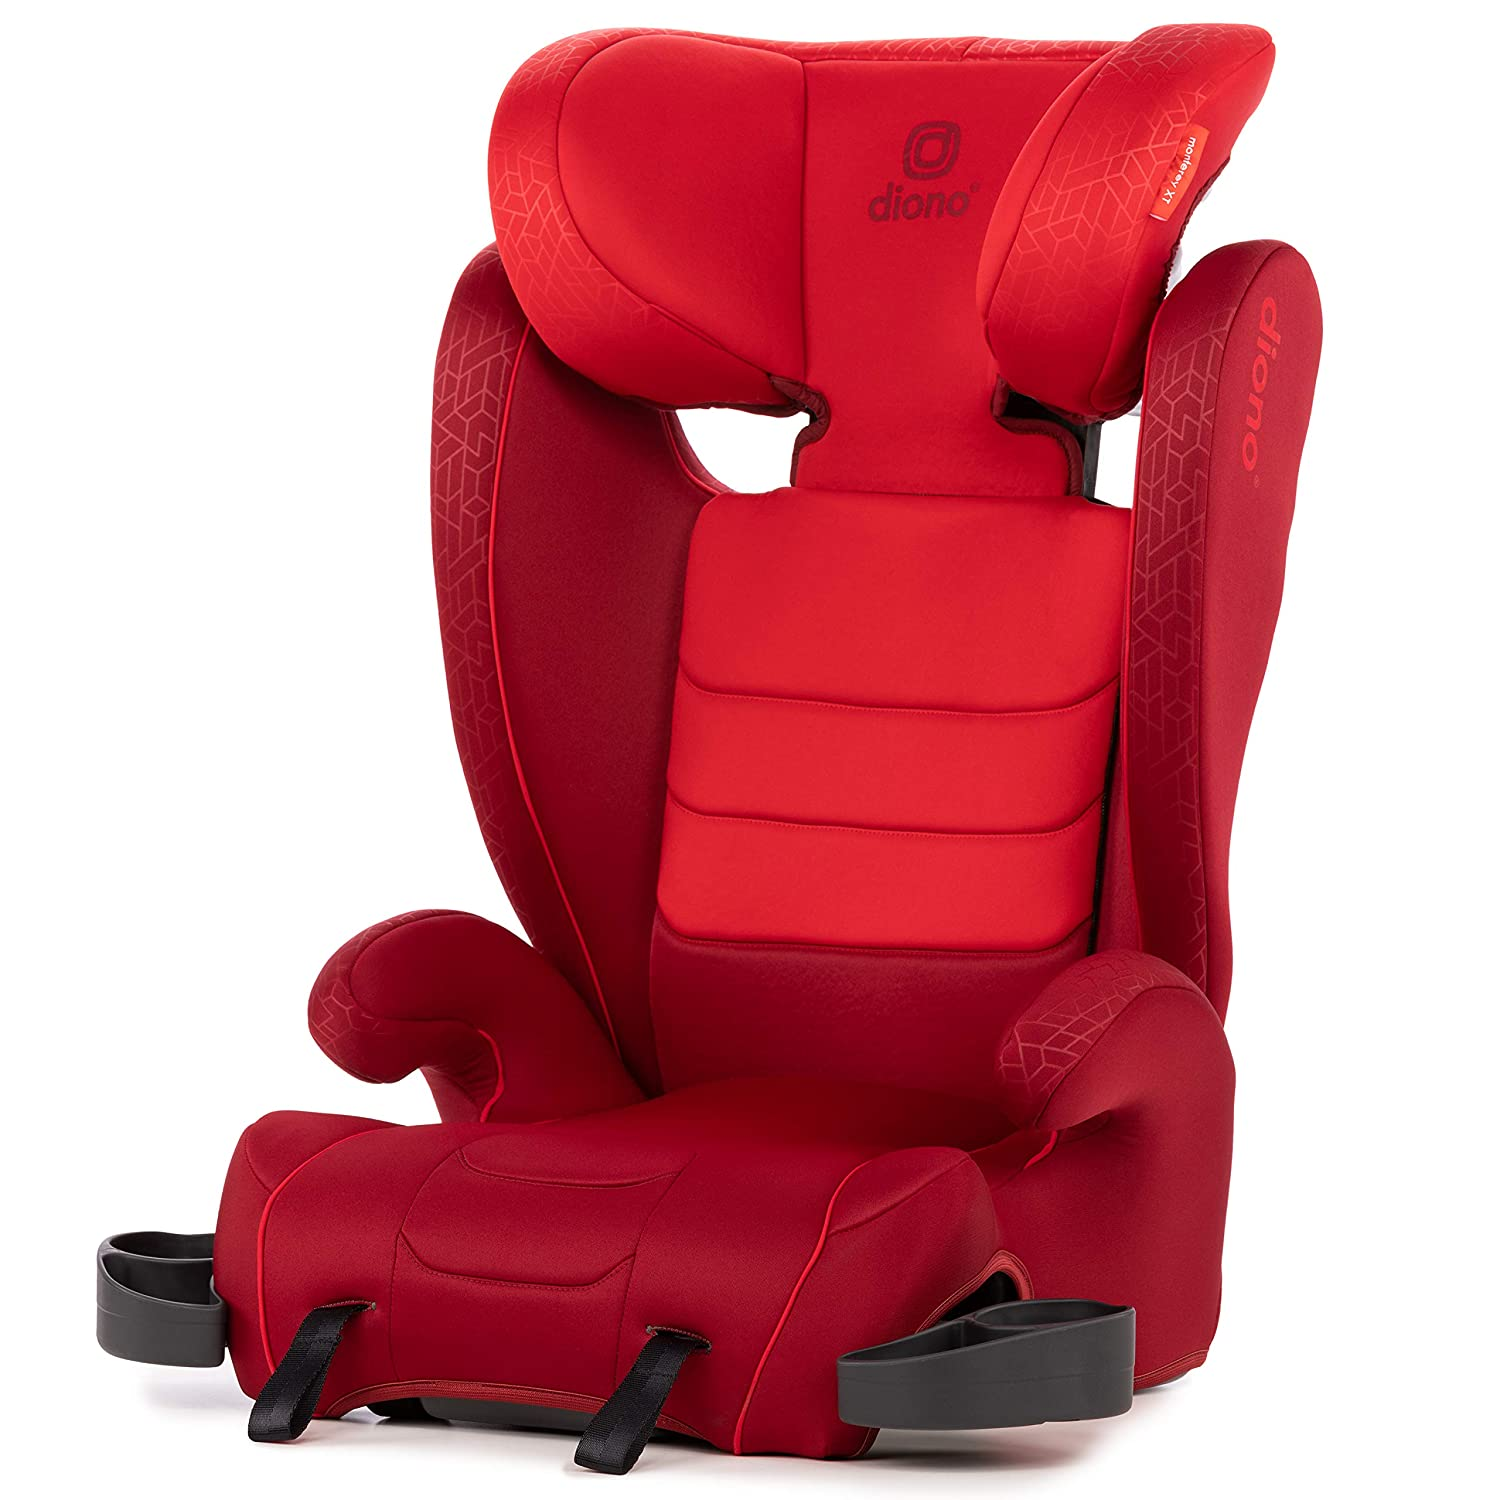 Diono Monterey XT Latch, 2-in-1 Belt Positioning Booster Seat with Expandable Height/Width, Red